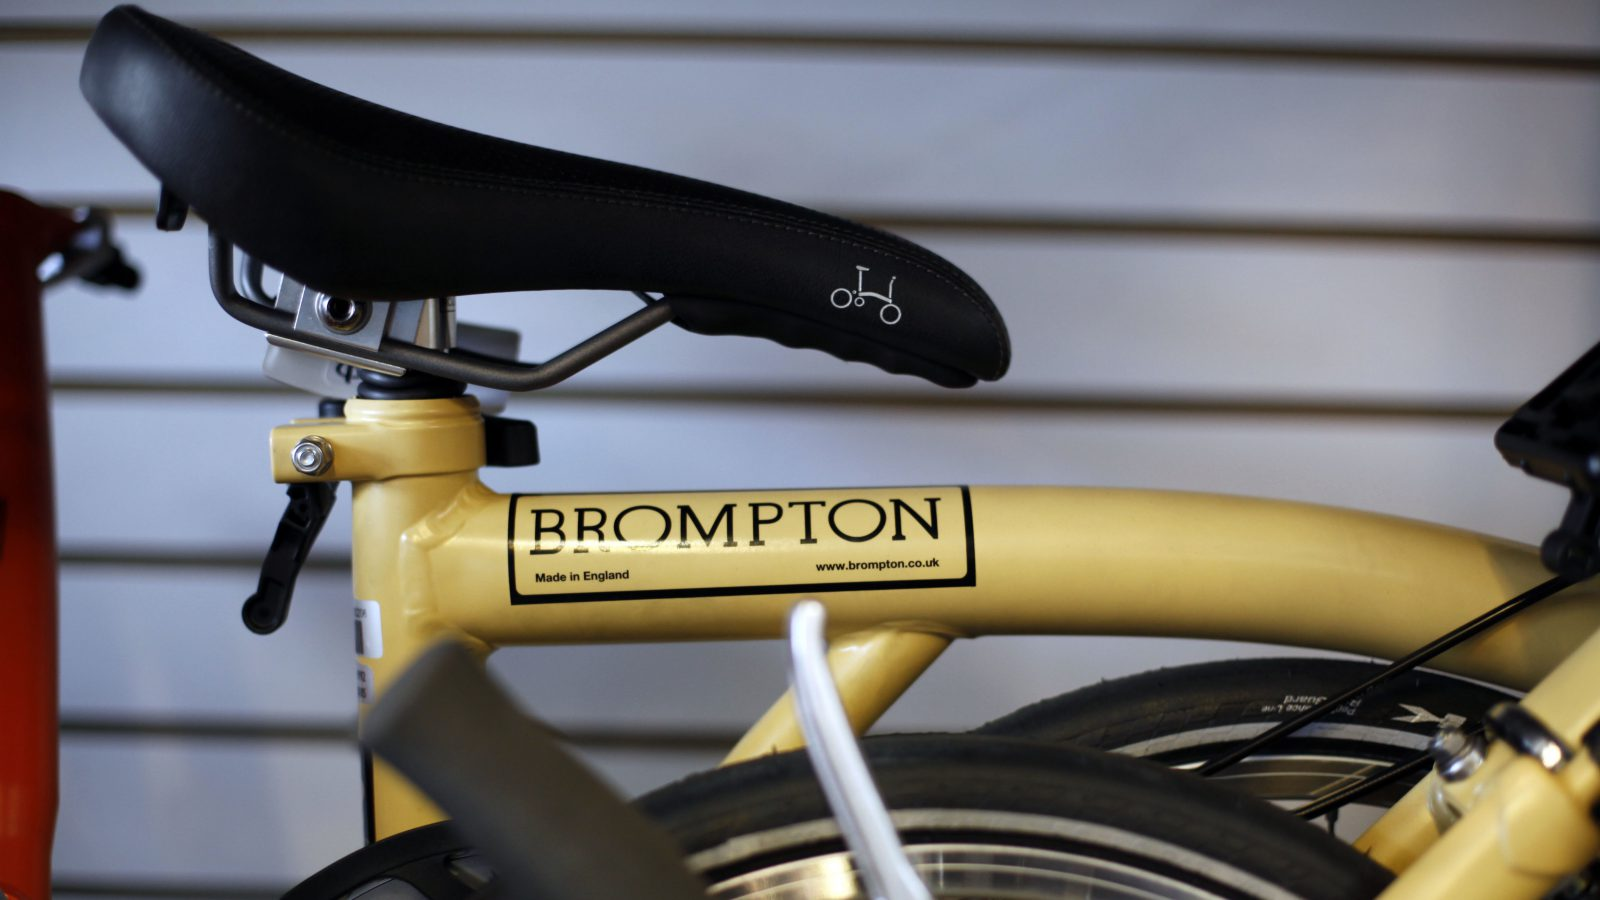 Brompton Bikes The Brompton Folding Bike Has Achieved Cult Status With Its